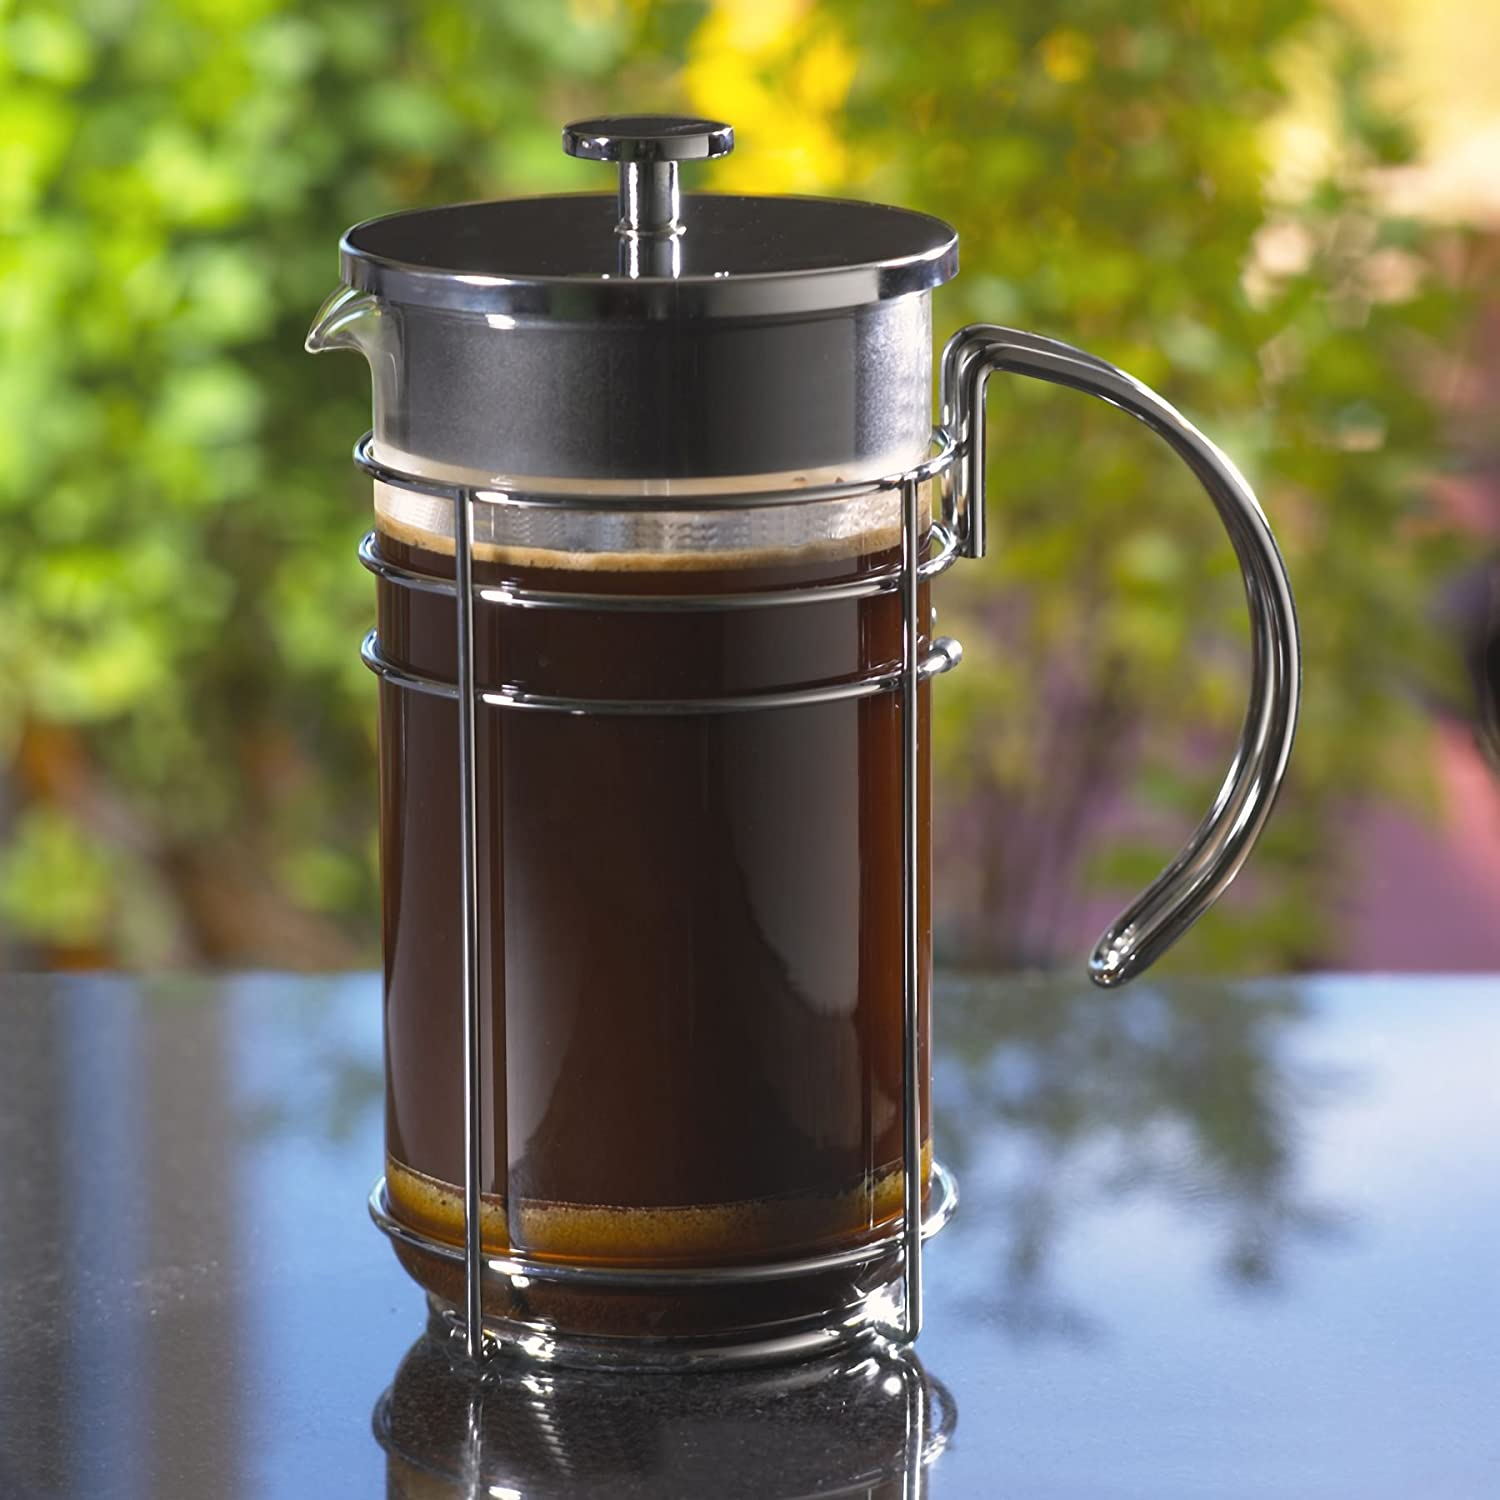 Grosch French Press Coffee Maker